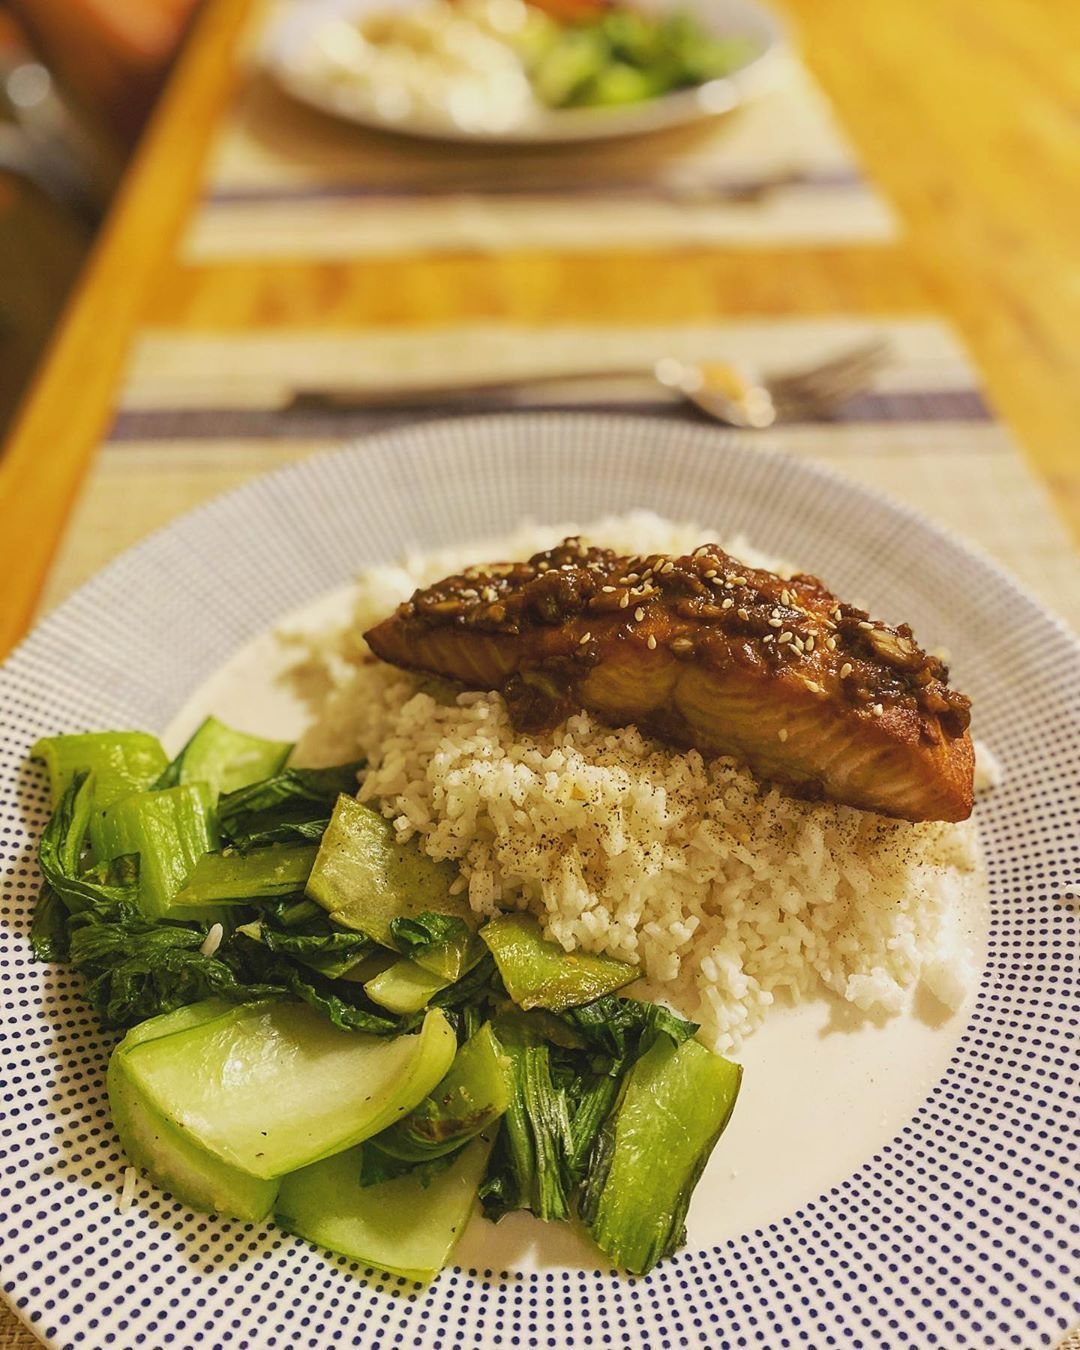 WERE BACK! Starting the week with teriyaki salmon over rice and bok choy for ya boy!#newrecipe #fallrecipes #fitfoodie #healthymeals #easydinner #foodblogfeed #easydinners #easyrecipe #allrecipes #lentils #recipes #recipeshare #recipesbook #recipesharing #recipeswap #RecipesThatCrock #recipesforwomen #recipesuccess #RecipesVideos #teriyakisalmon WERE BACK! Starting the week with teriyaki salmon over rice and bok choy for ya boy!#newrecipe #fallrecipes #fitfoodie #healthymeals #easydinner #foodbl #teriyakisalmon